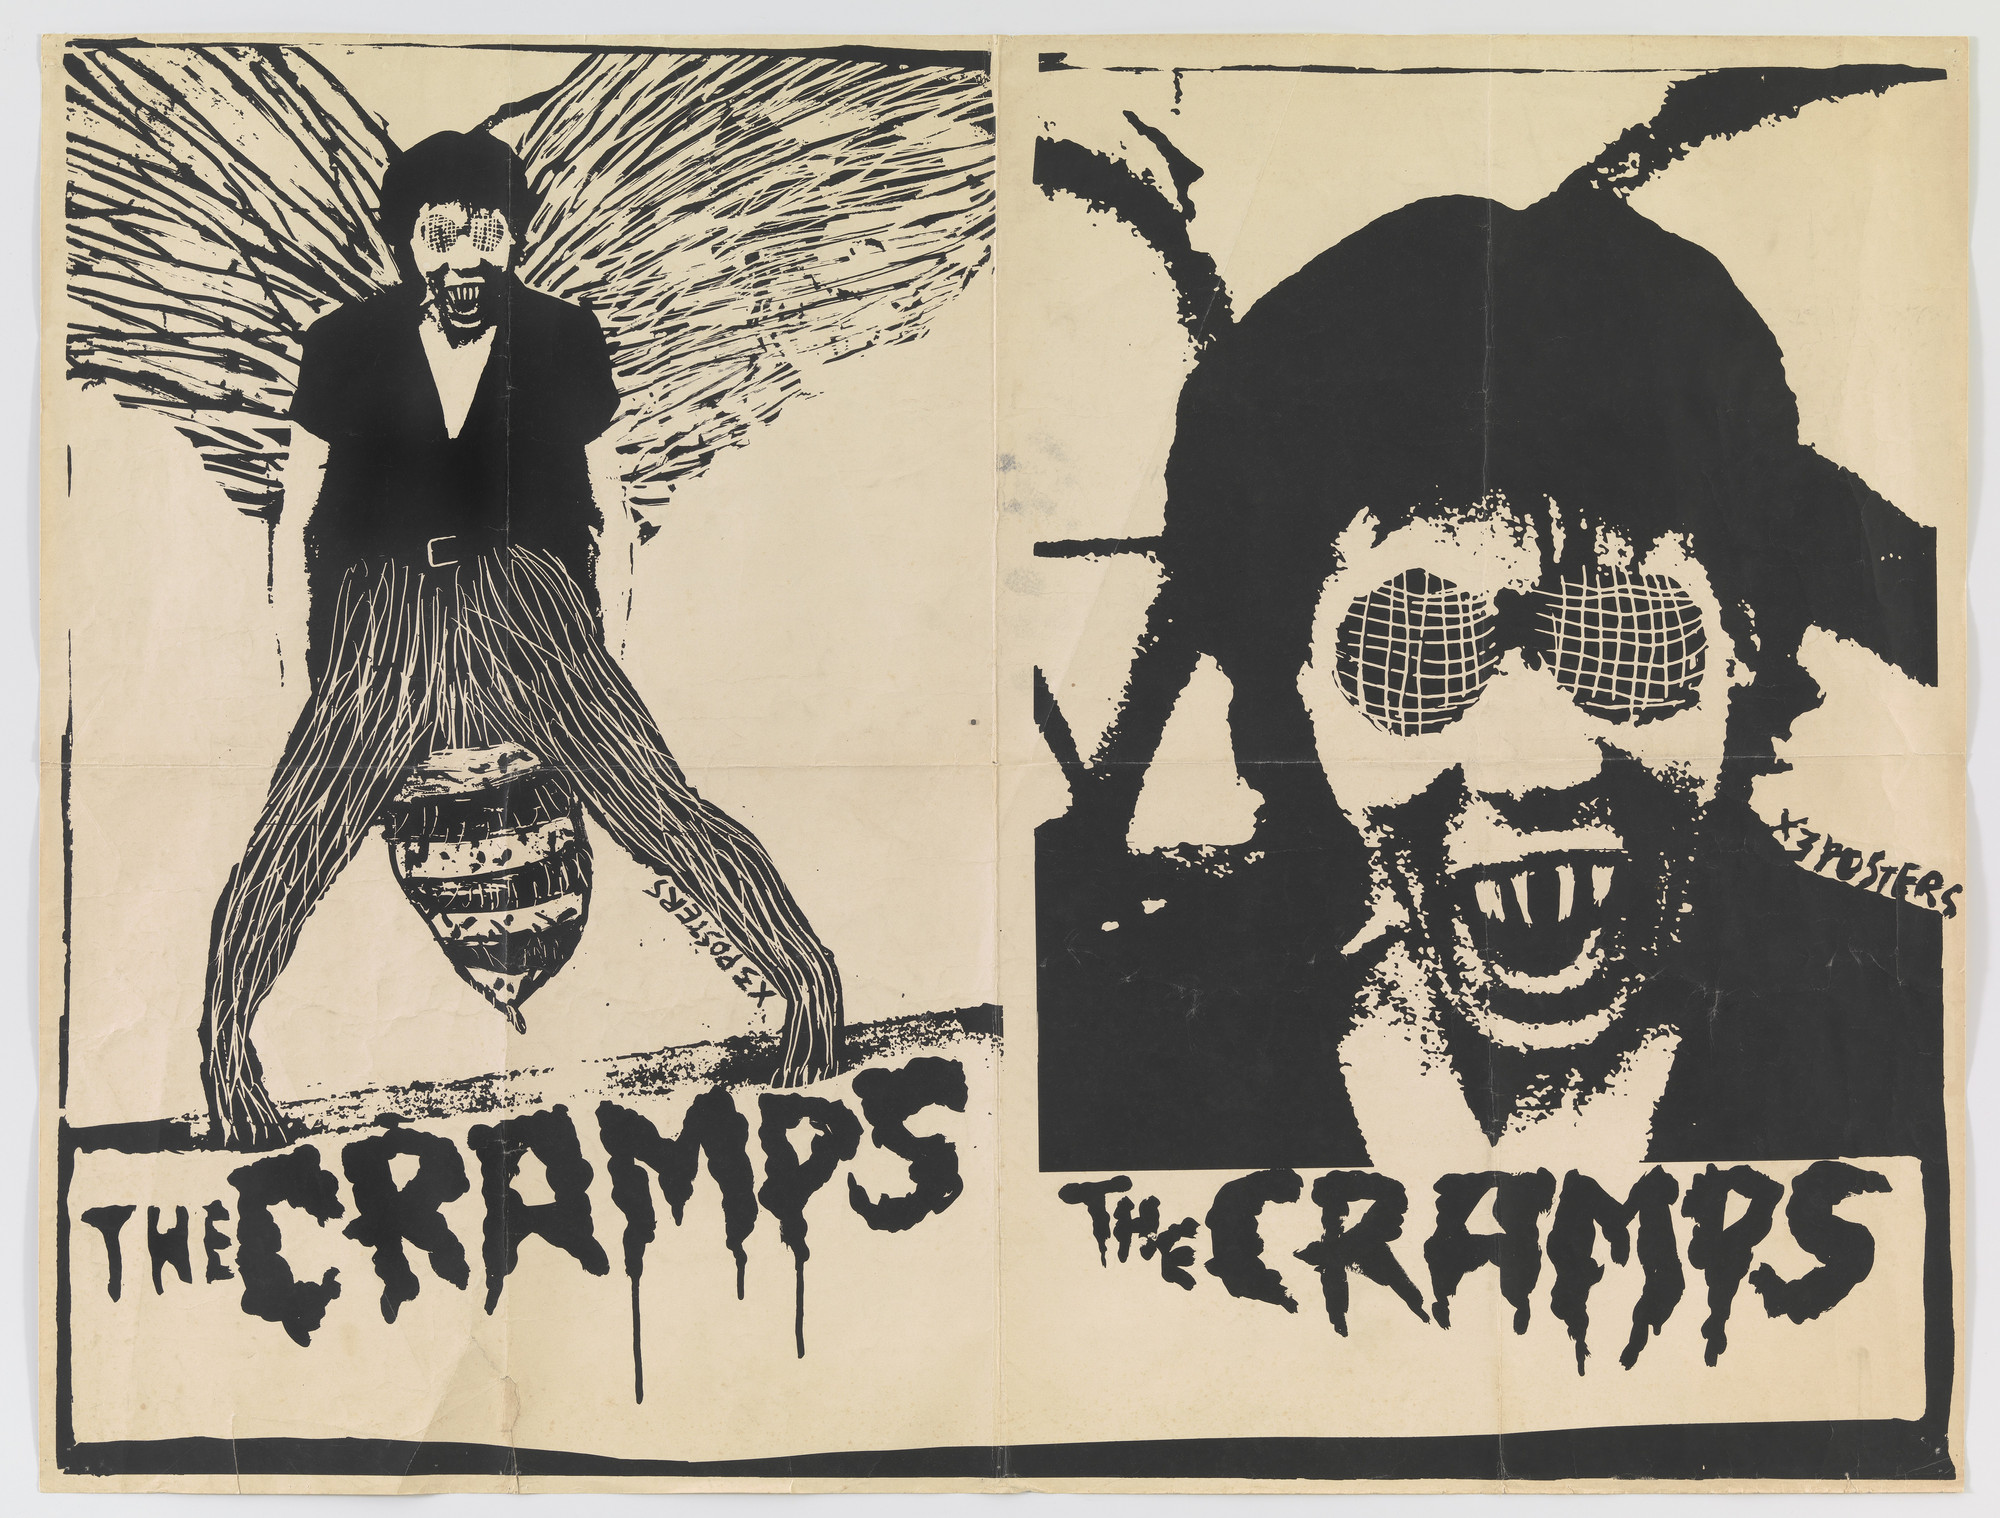 X3 Studios, David Arnoff. The Cramps (Poster for The Human Fly Tour). 1978